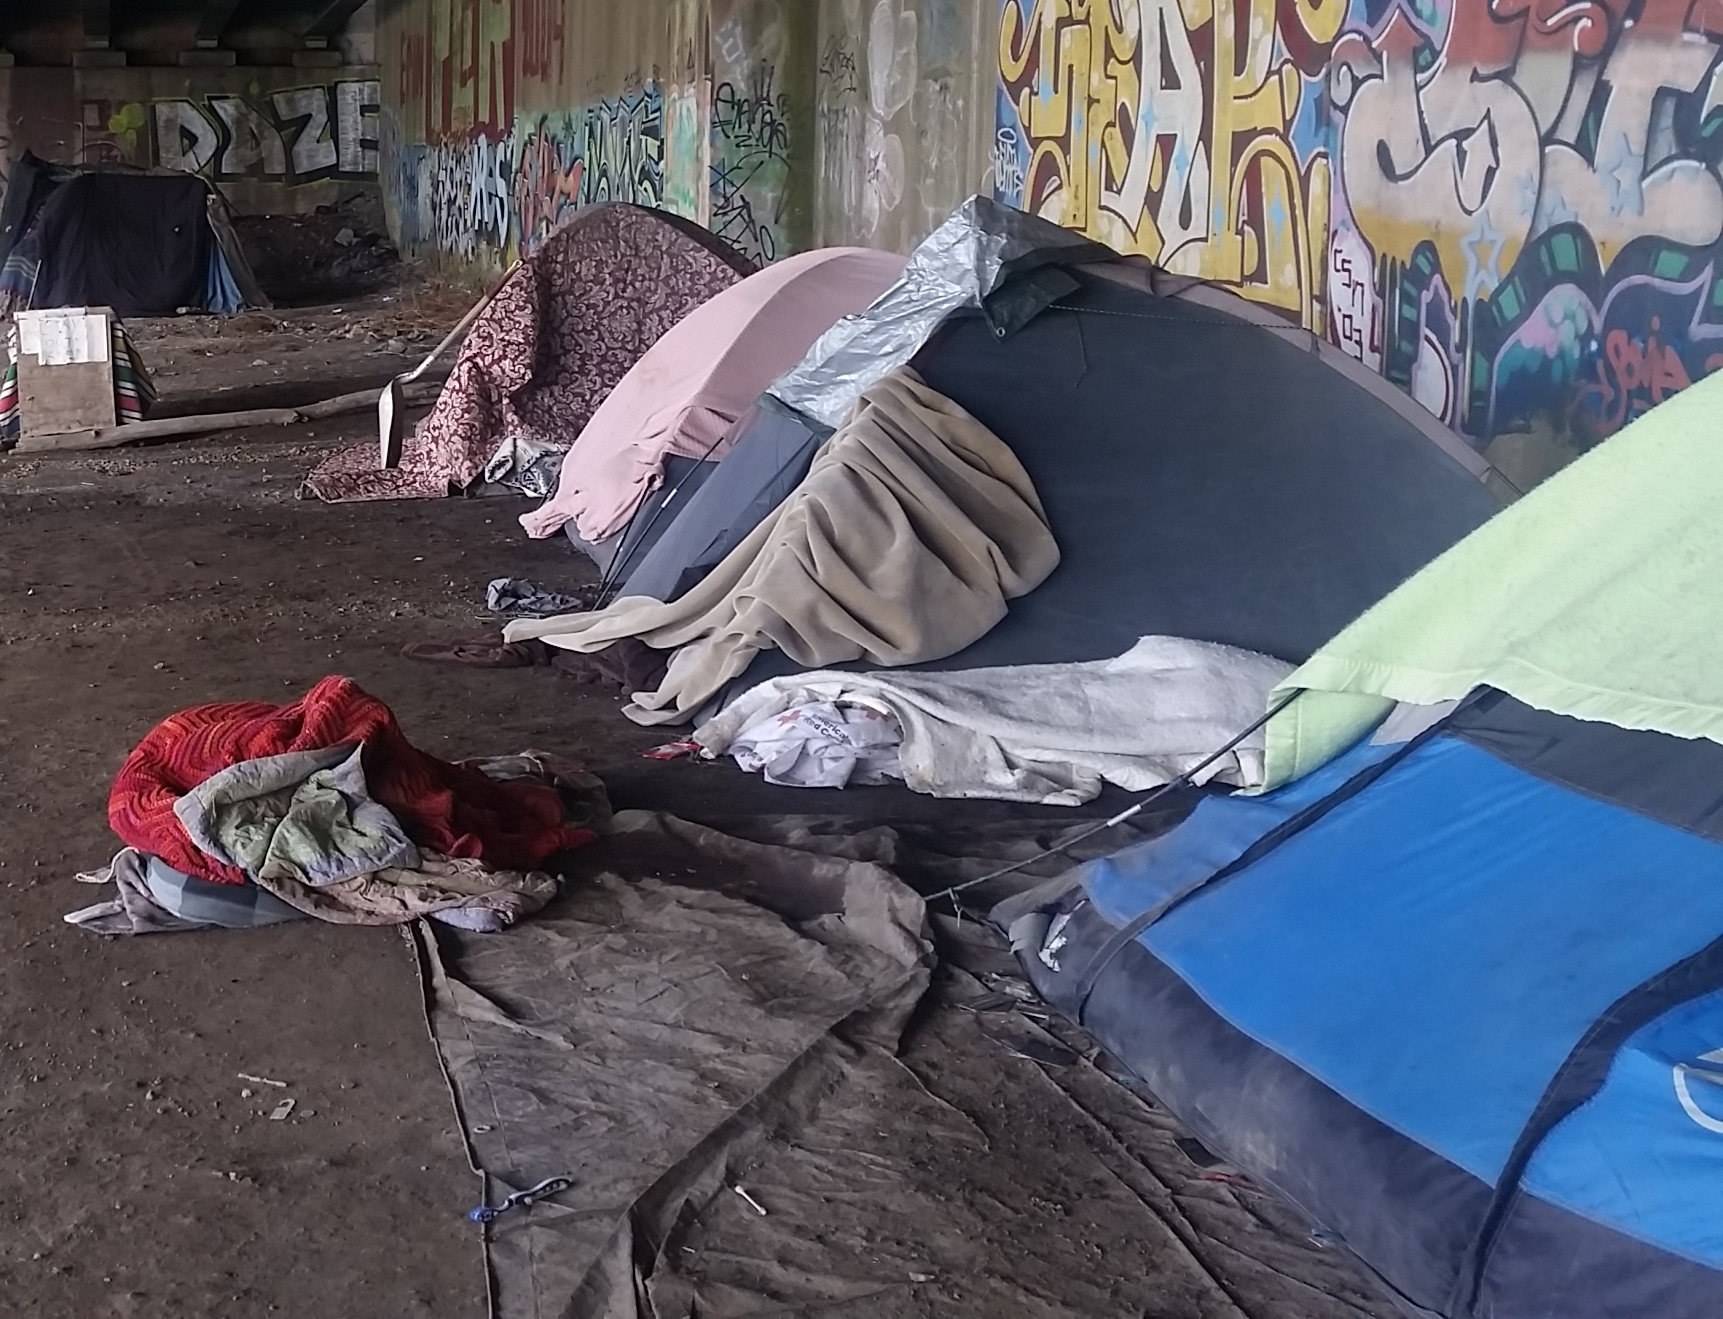 Homeless Tents under Pittsburgh Bridge.jpg